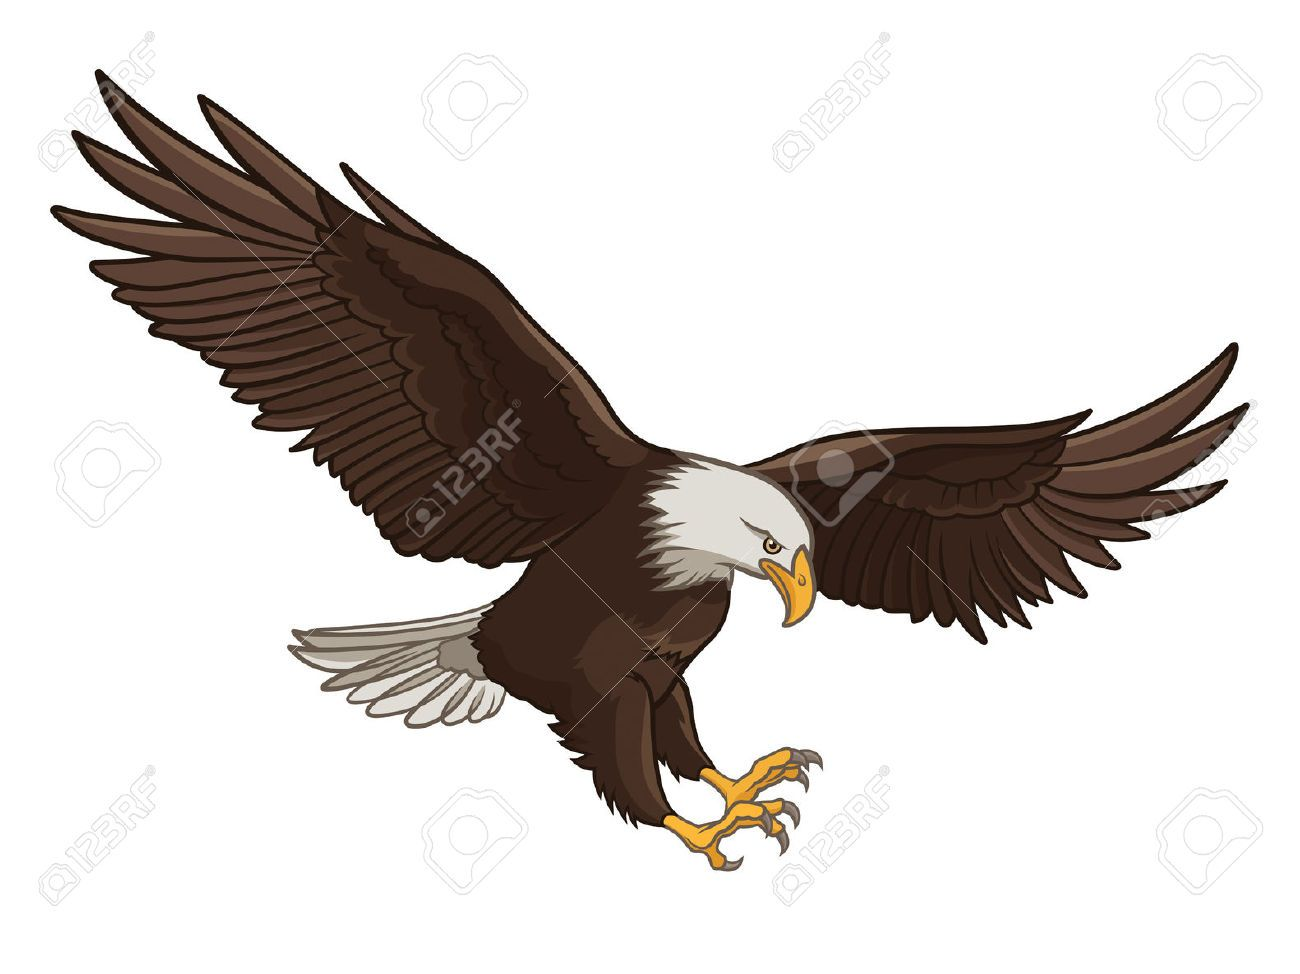 Vector Illustration Of A Bald Eagle, Isolated On A White ...